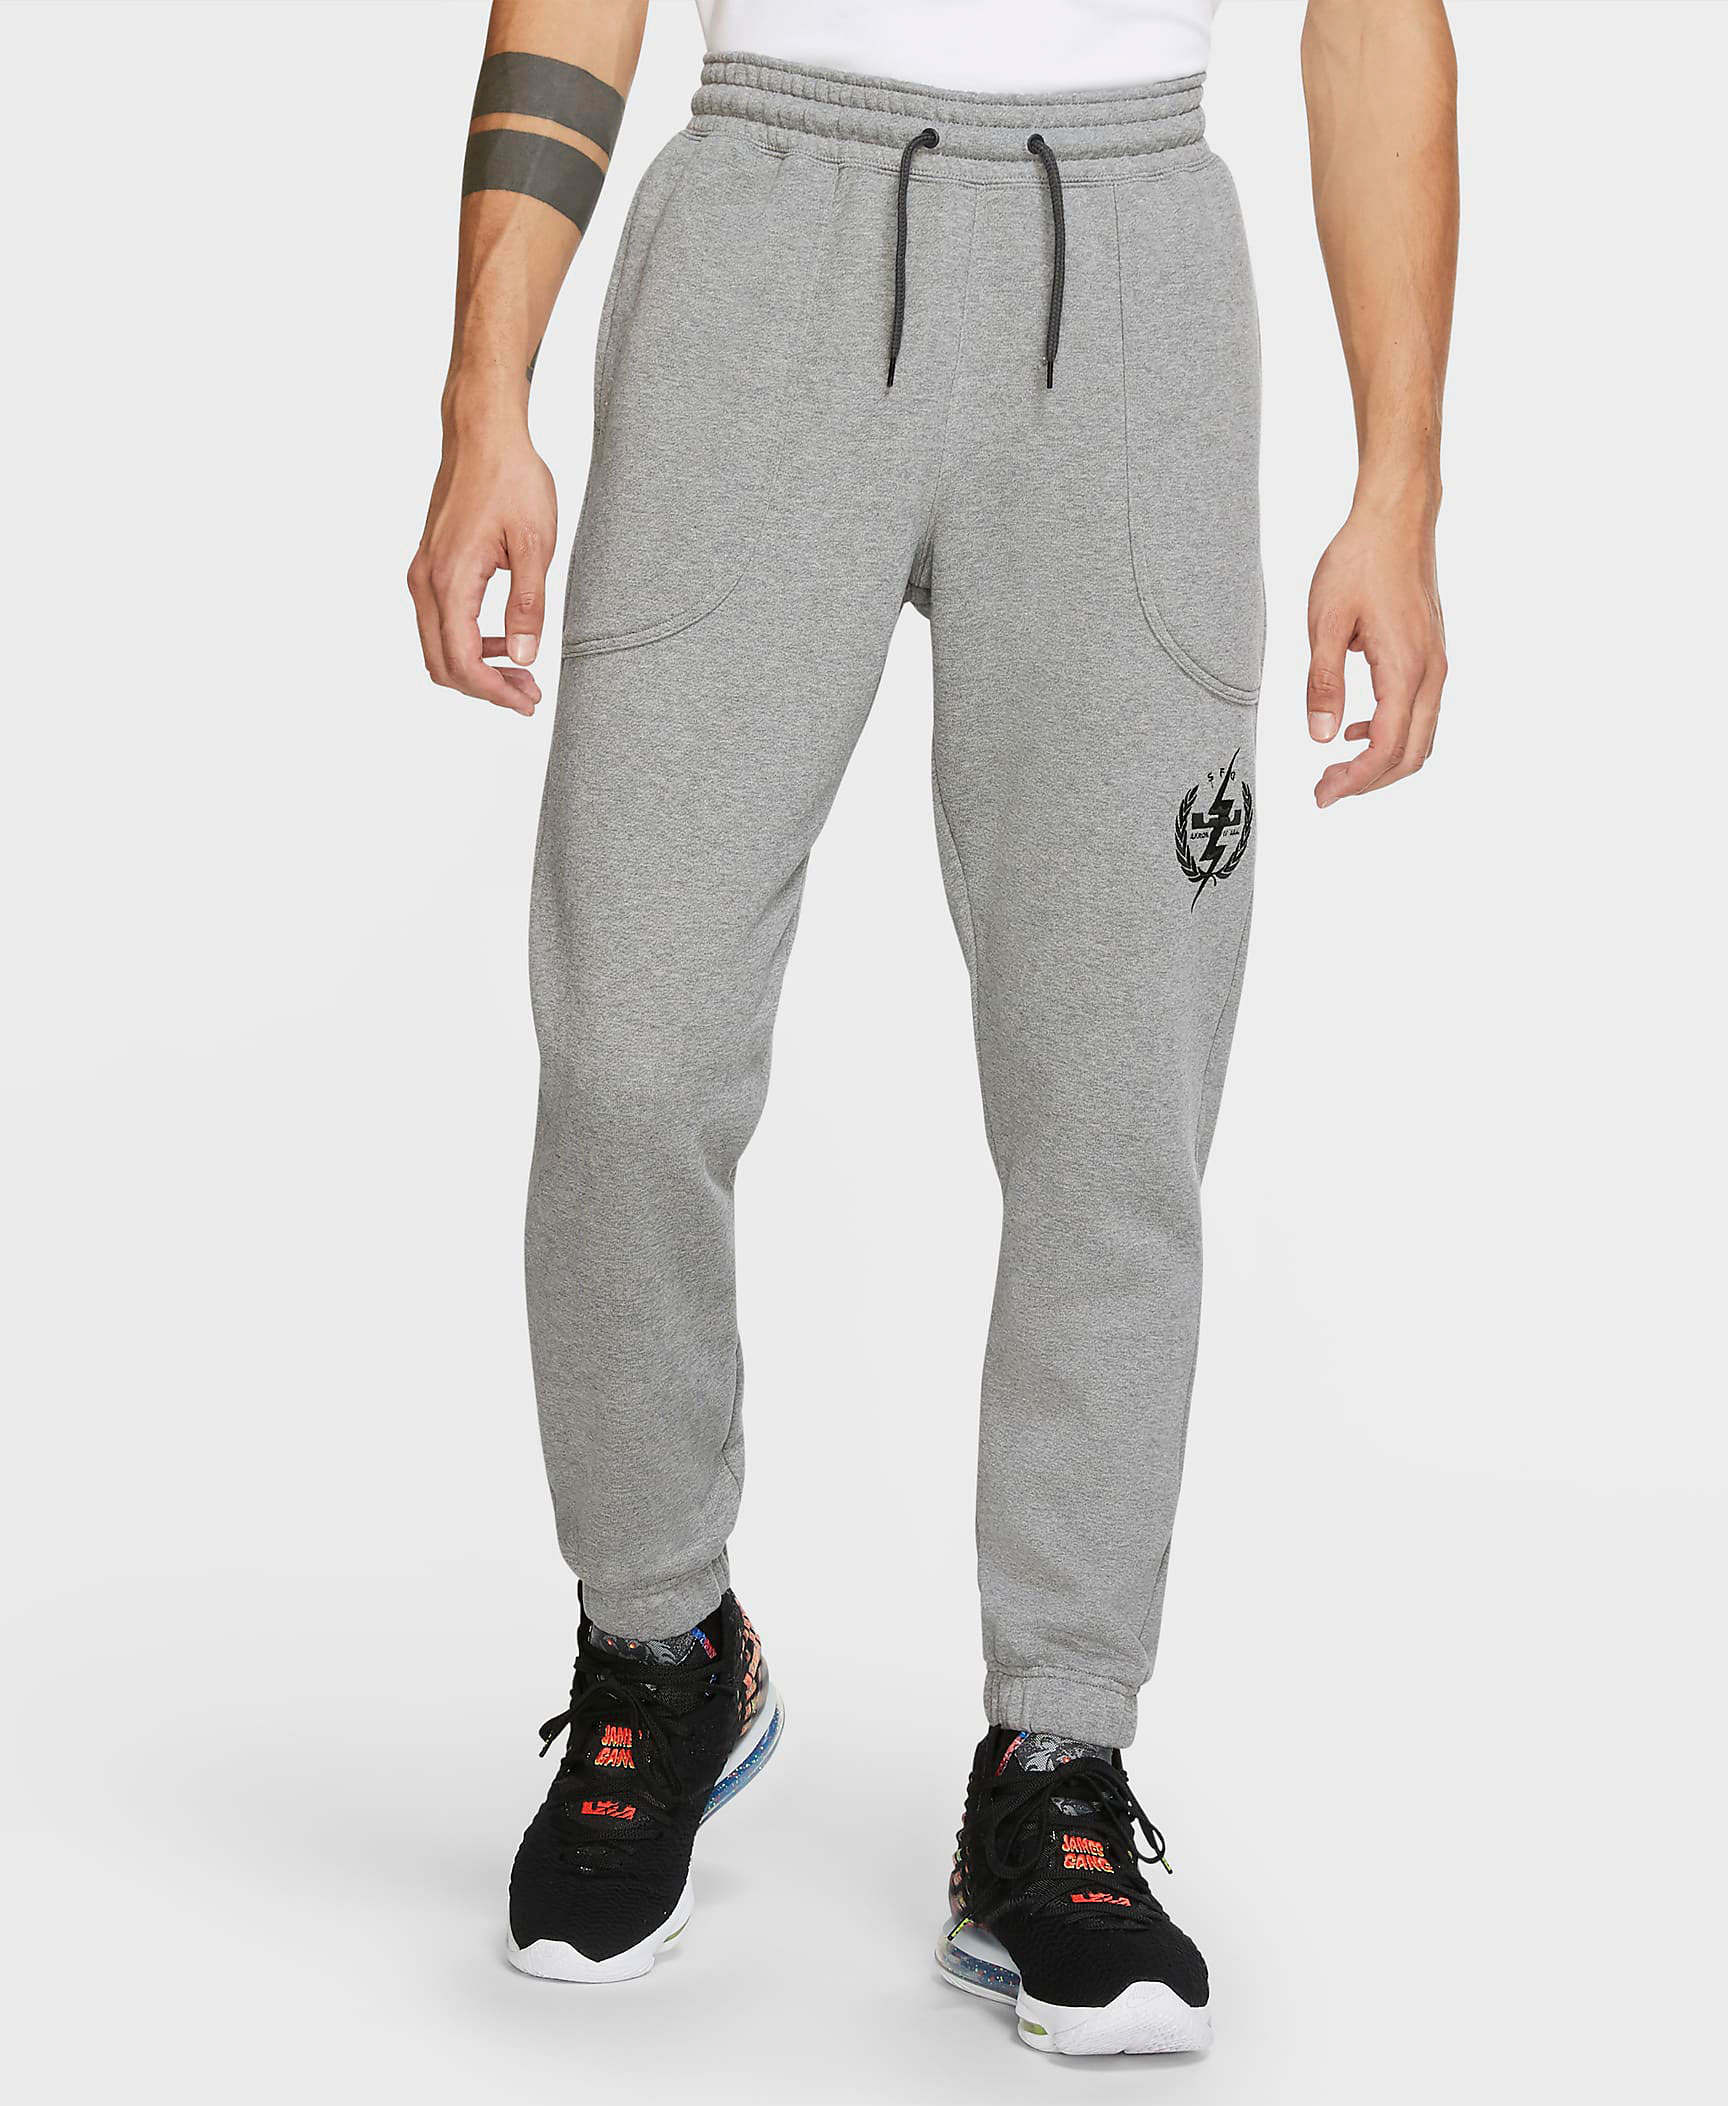 nike-lebron-18-pants-grey-2